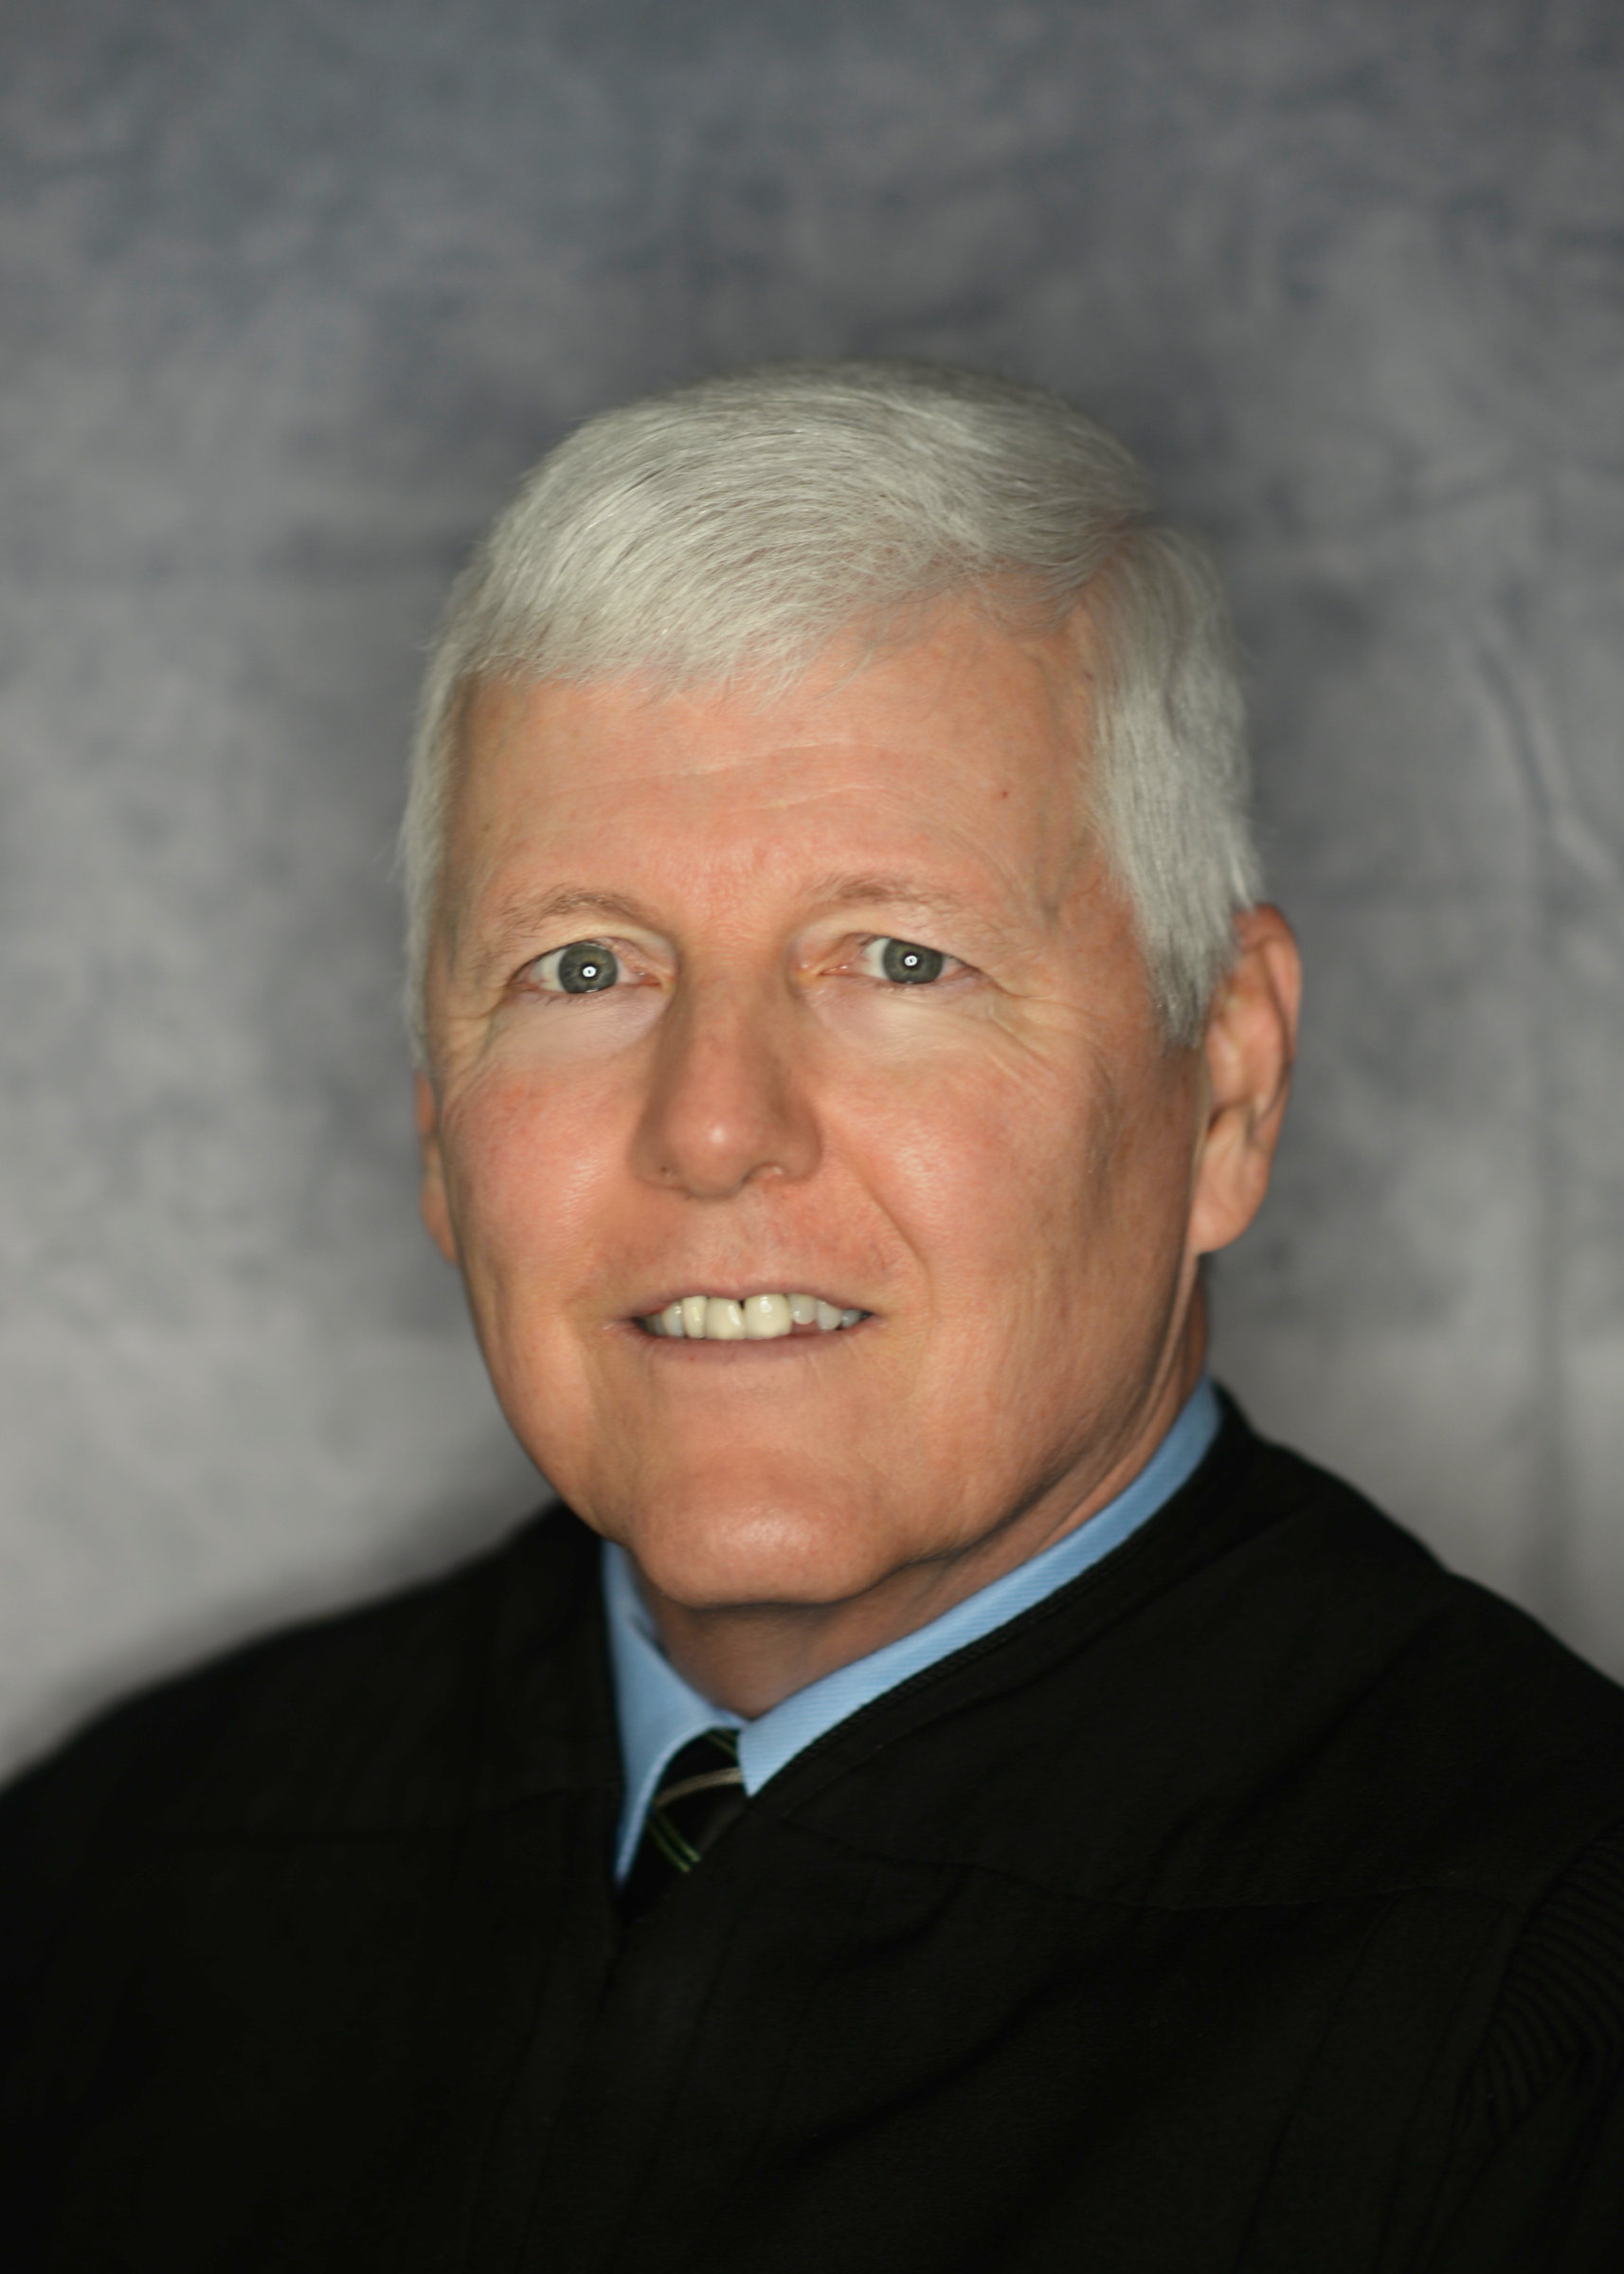 Judge William Davis